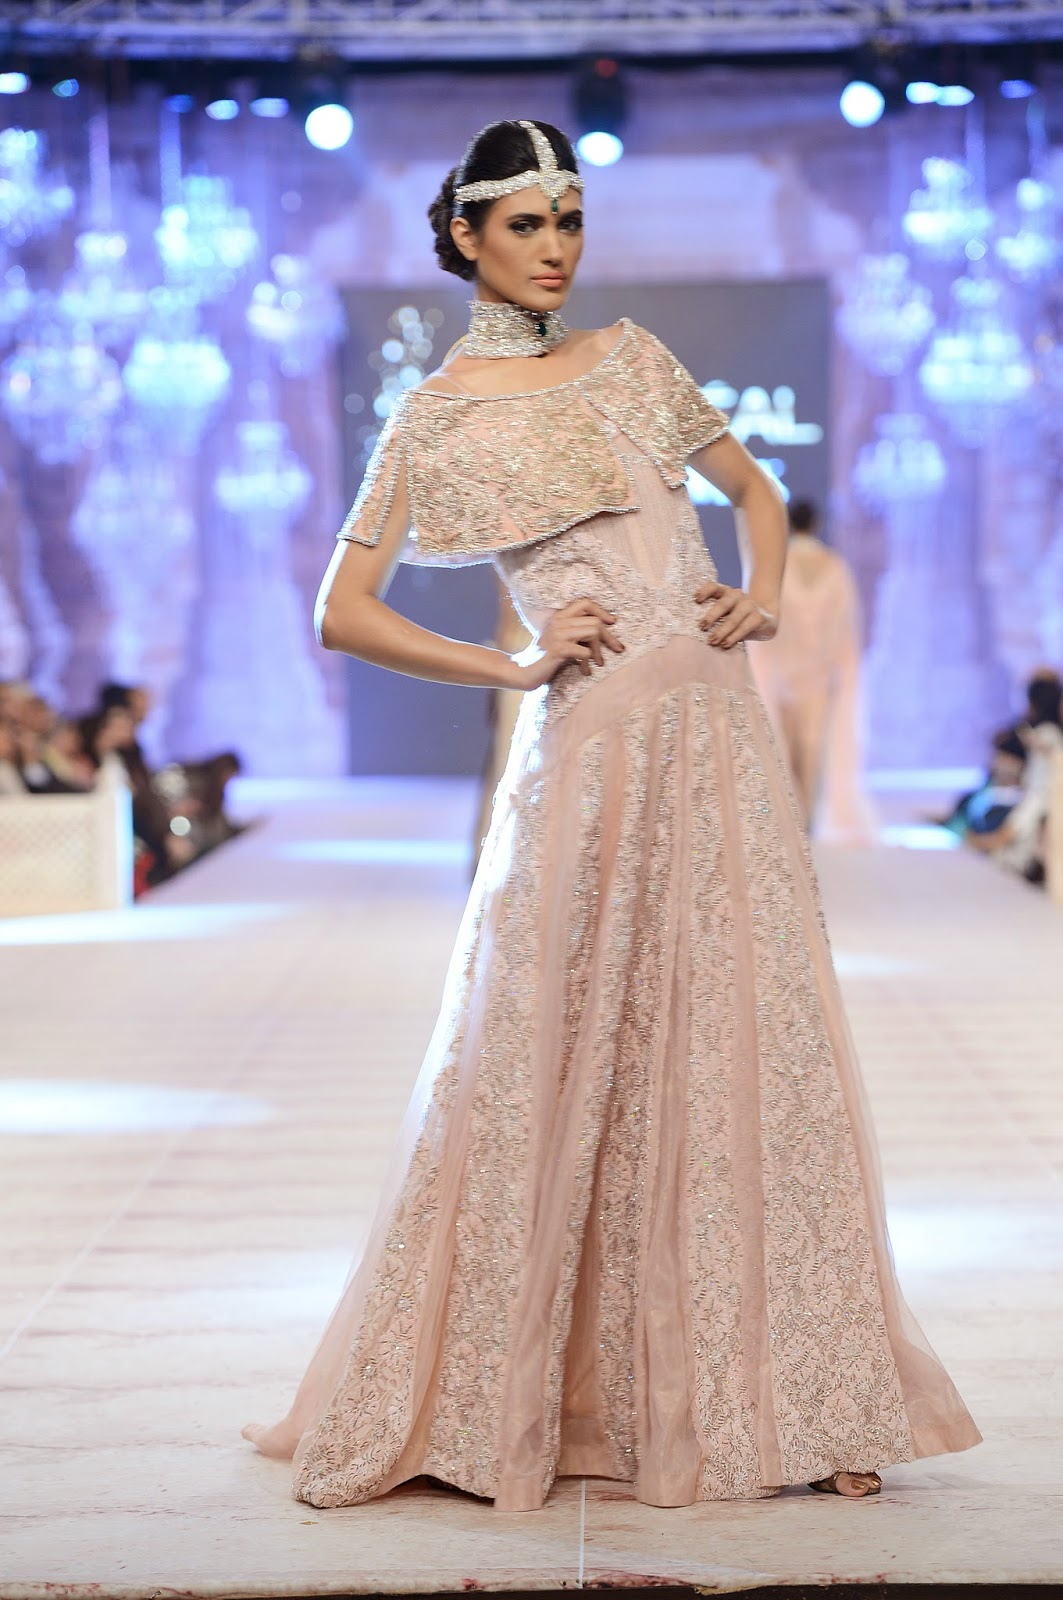 Saira Shakira Bridal Collection at PLBW 2014 Pakistan